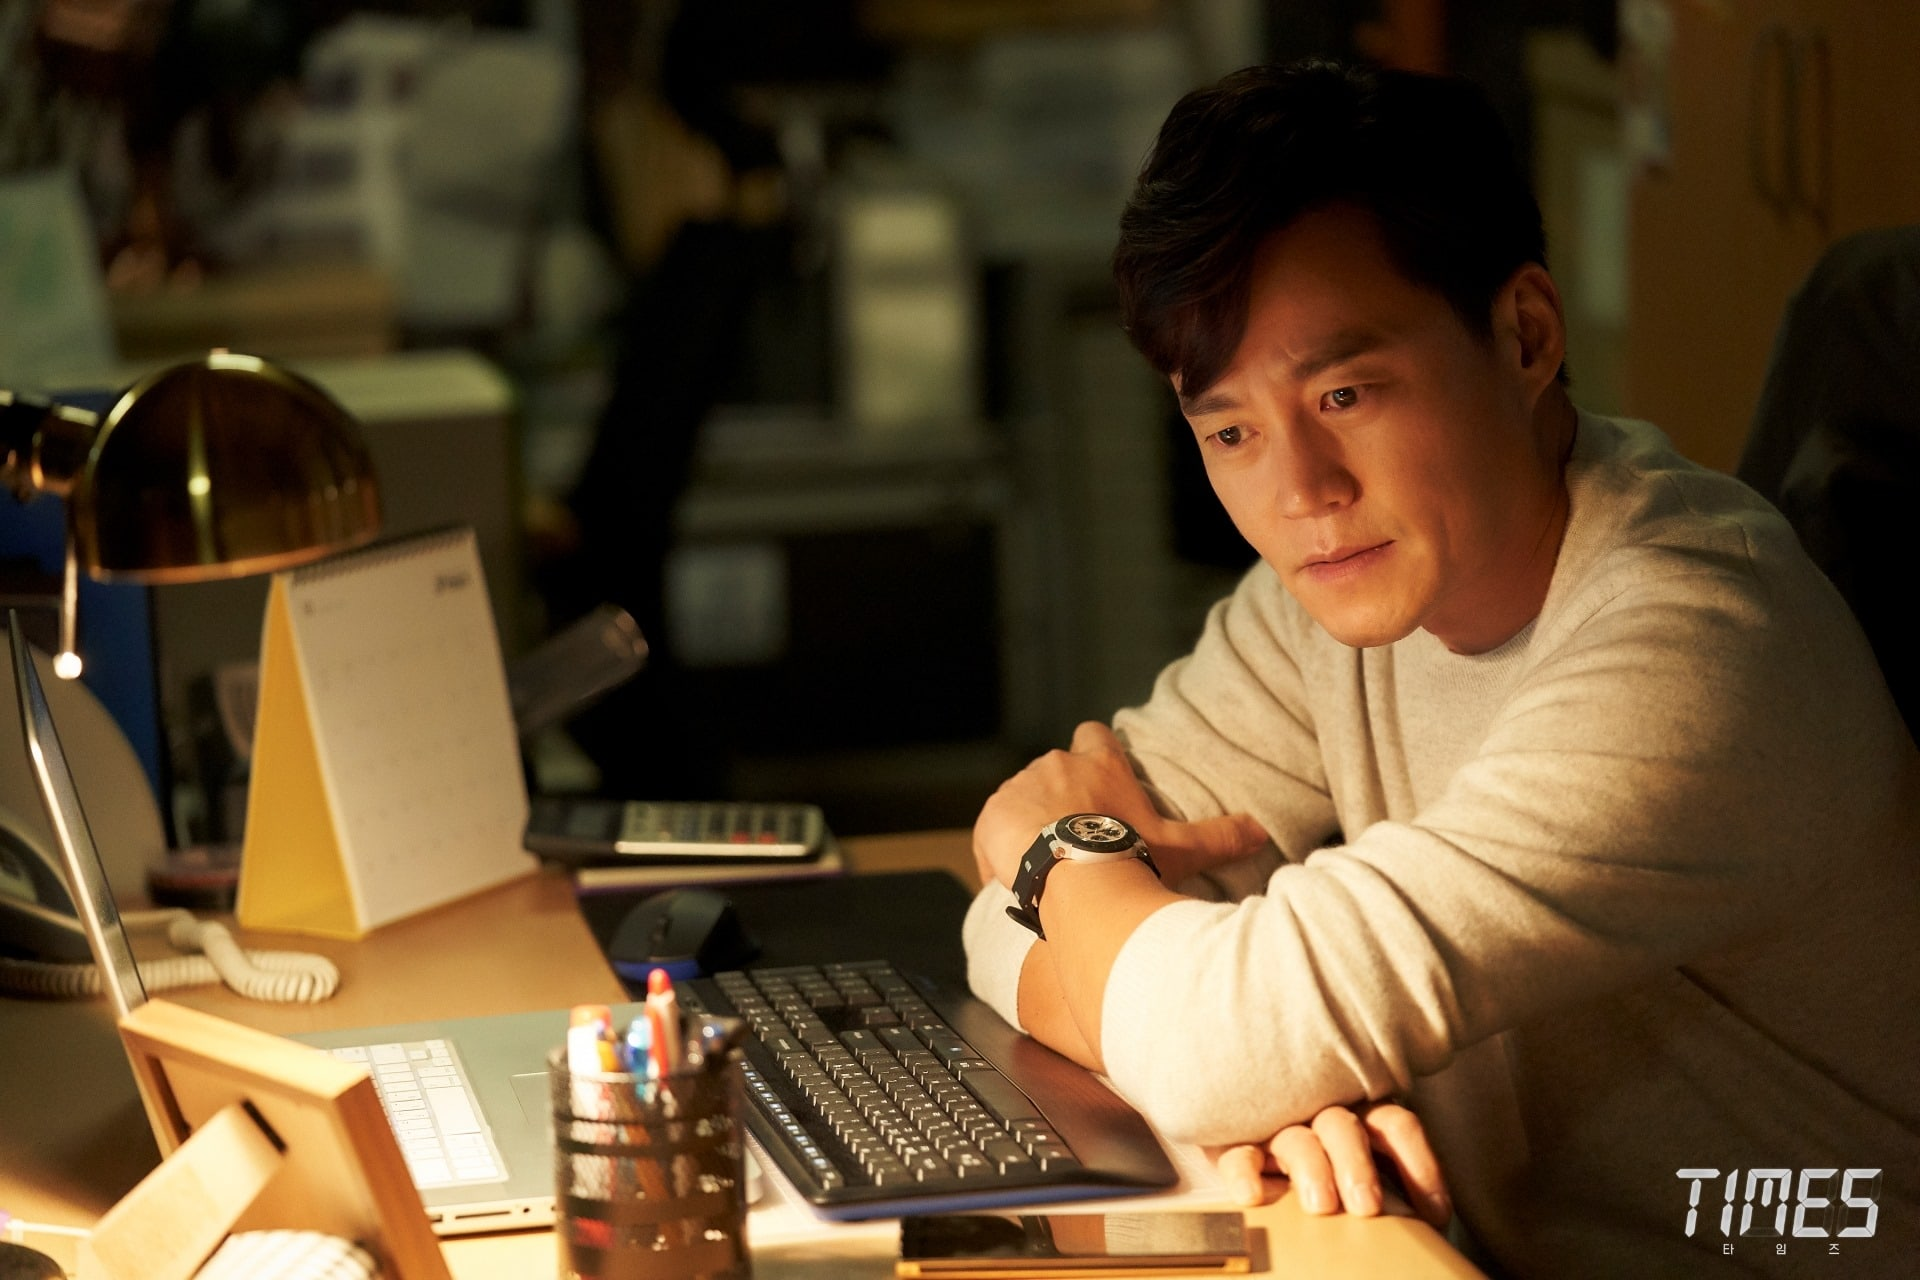 """""""Times"""": Lee Seo Jin is a determined reporter - Pure Kpop"""